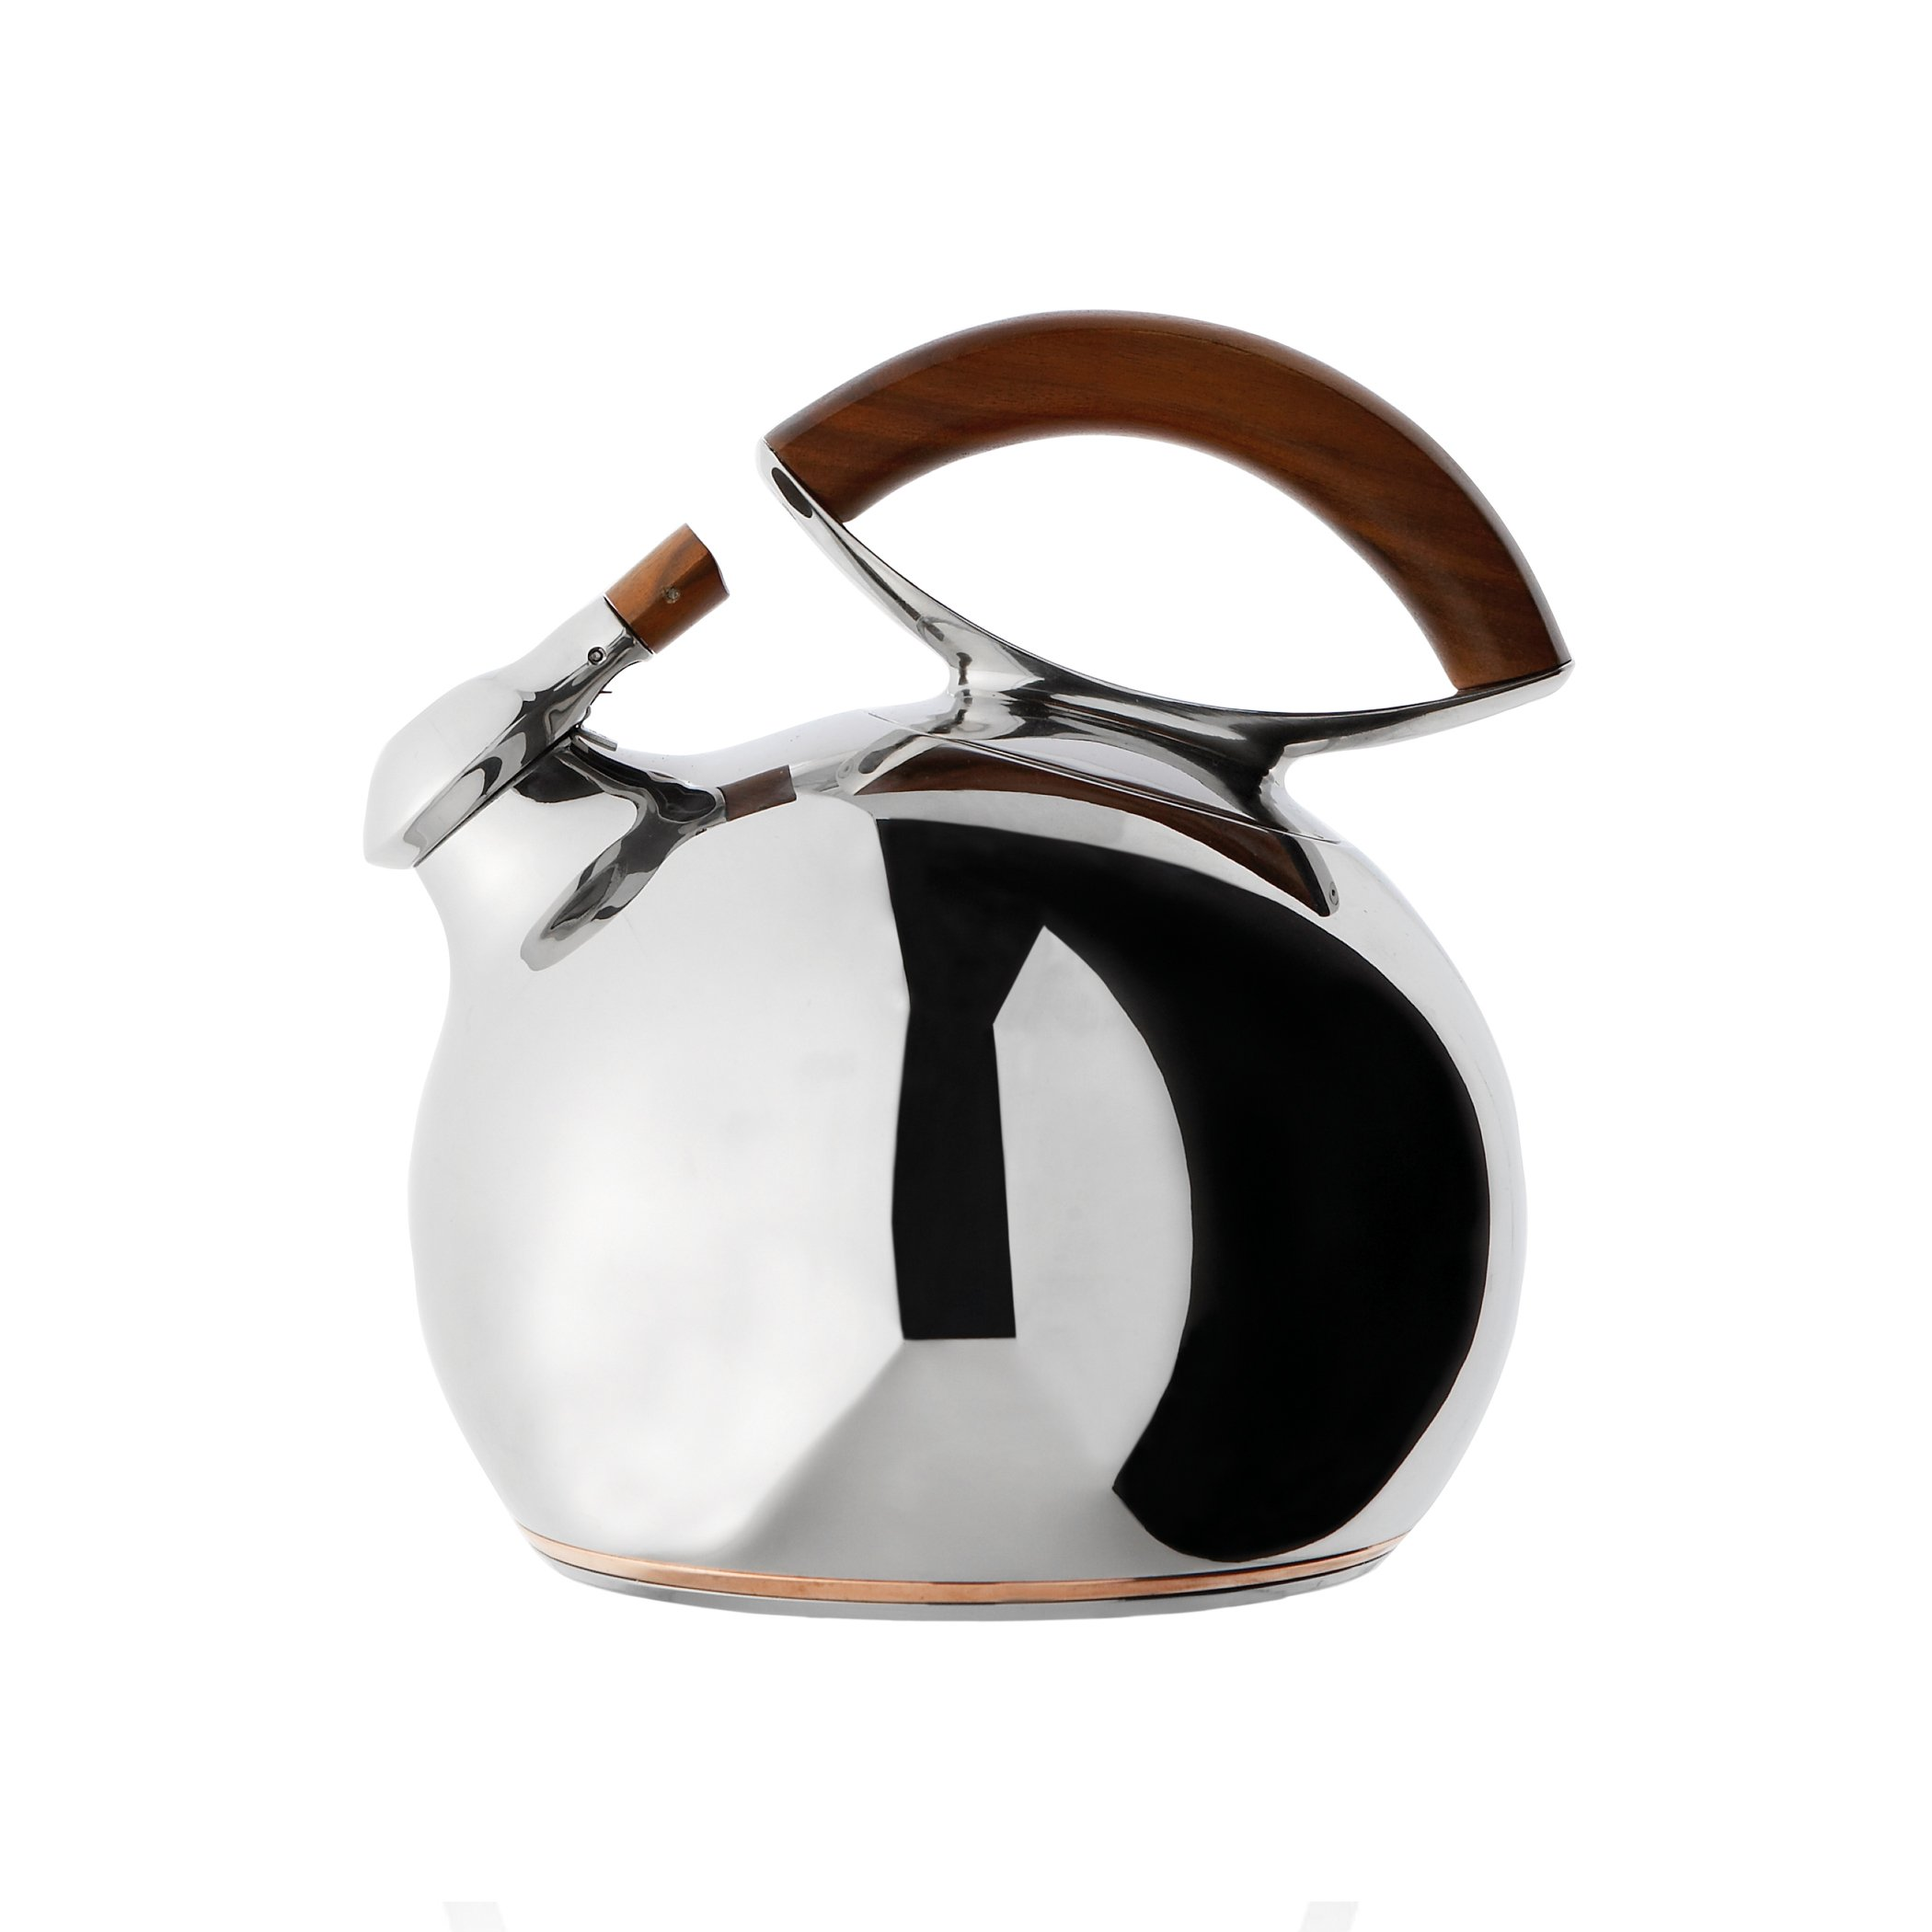 Nambè Bulbo Kettle, Stainless Steel and Wood